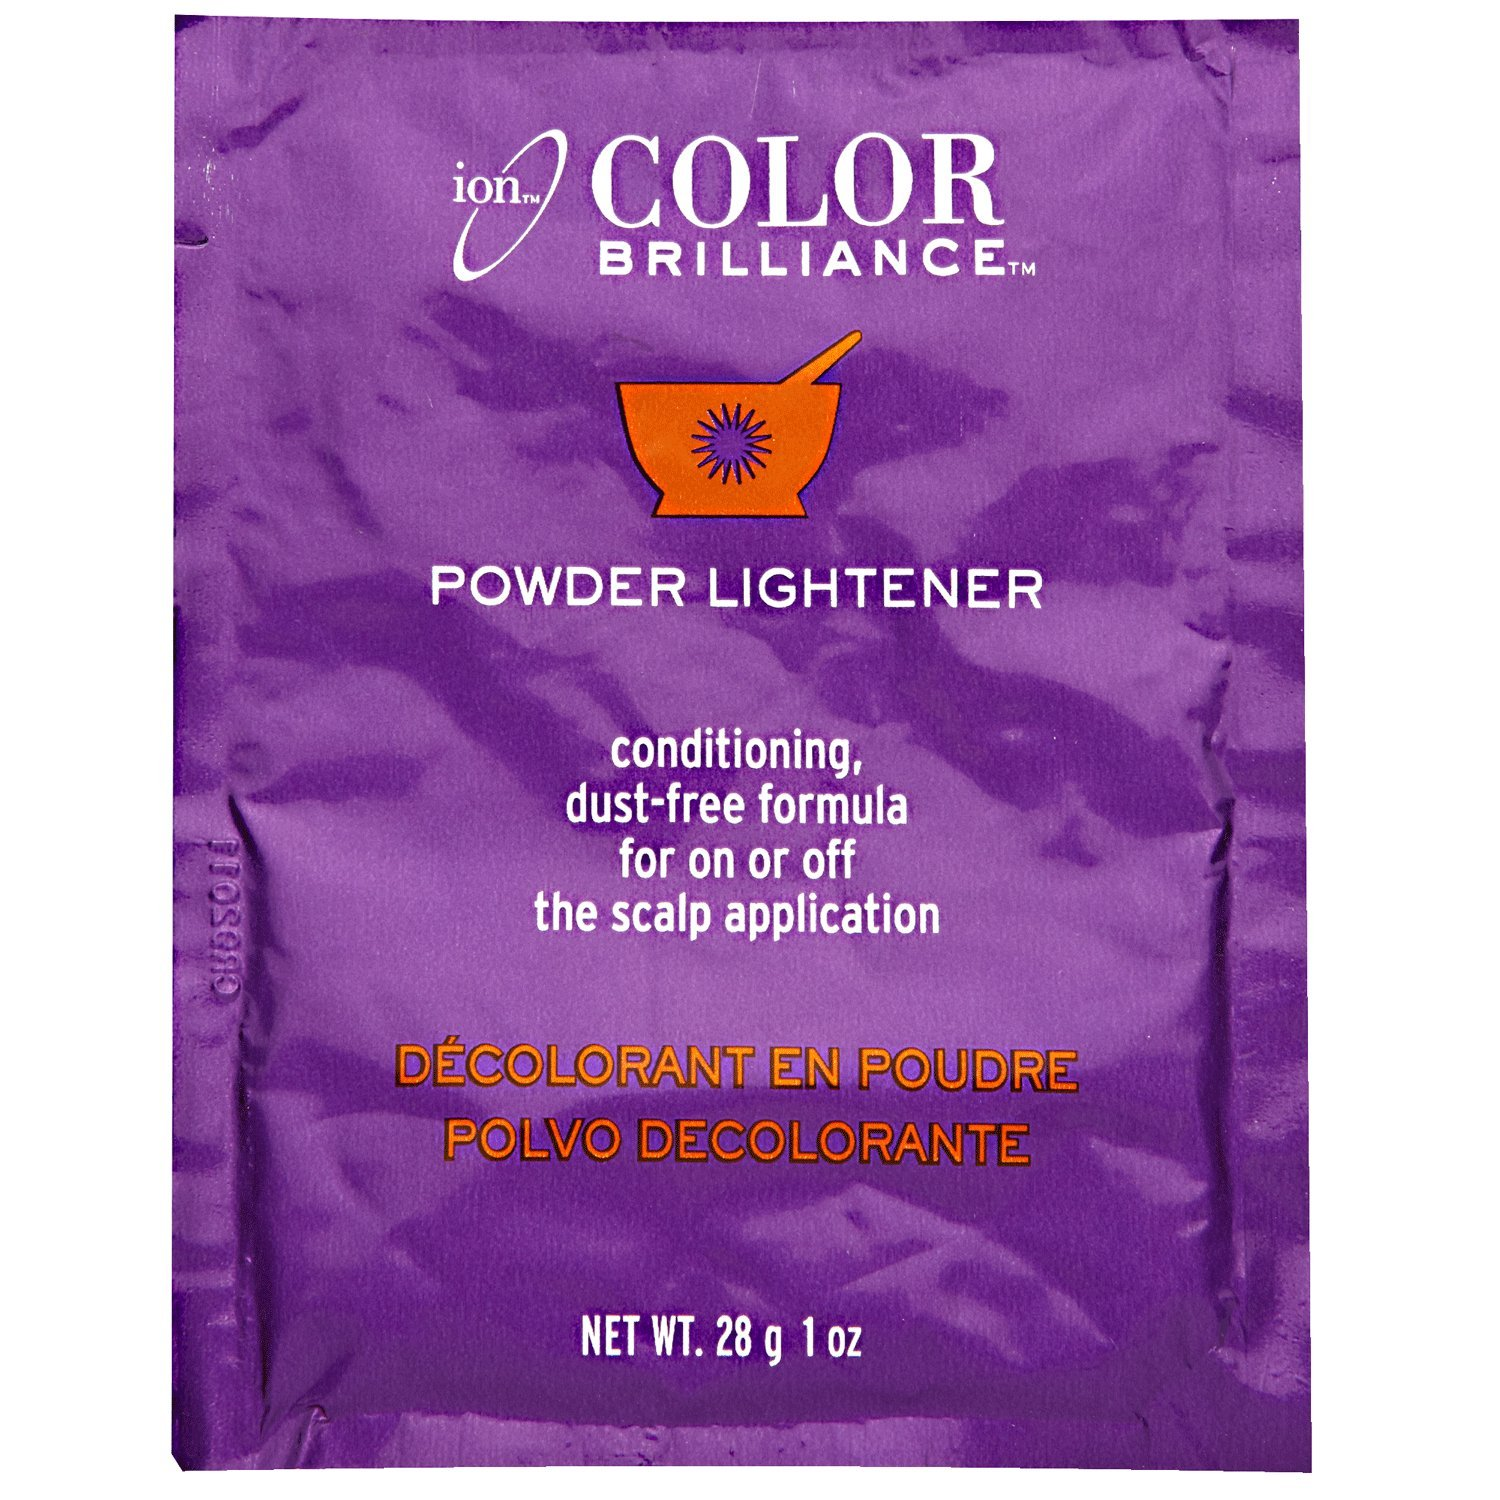 Powder Lightener Packette ION HAIRCOLOR